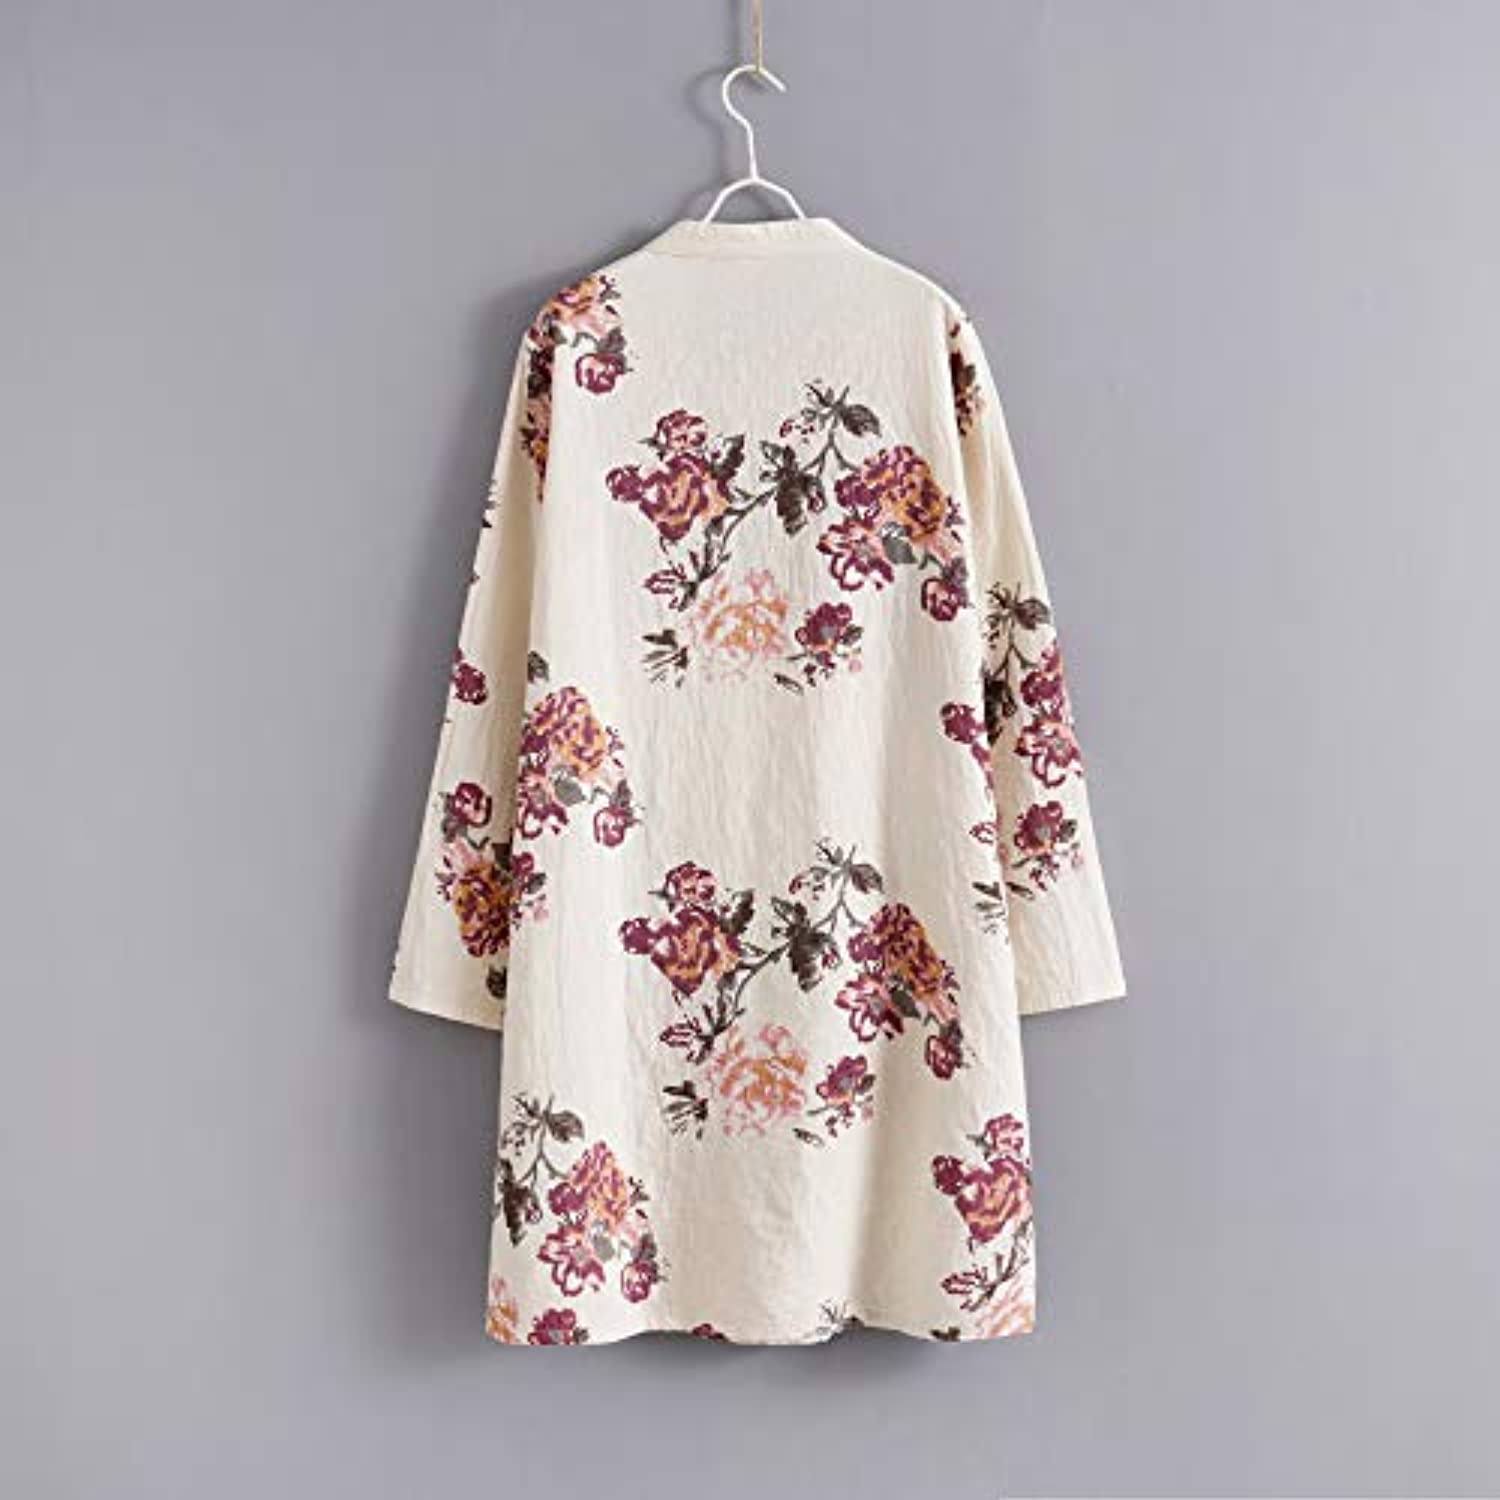 Women's Linen Dress Long Sleeve Retro Tunic Dresses Ethnic Floral Print Clothing